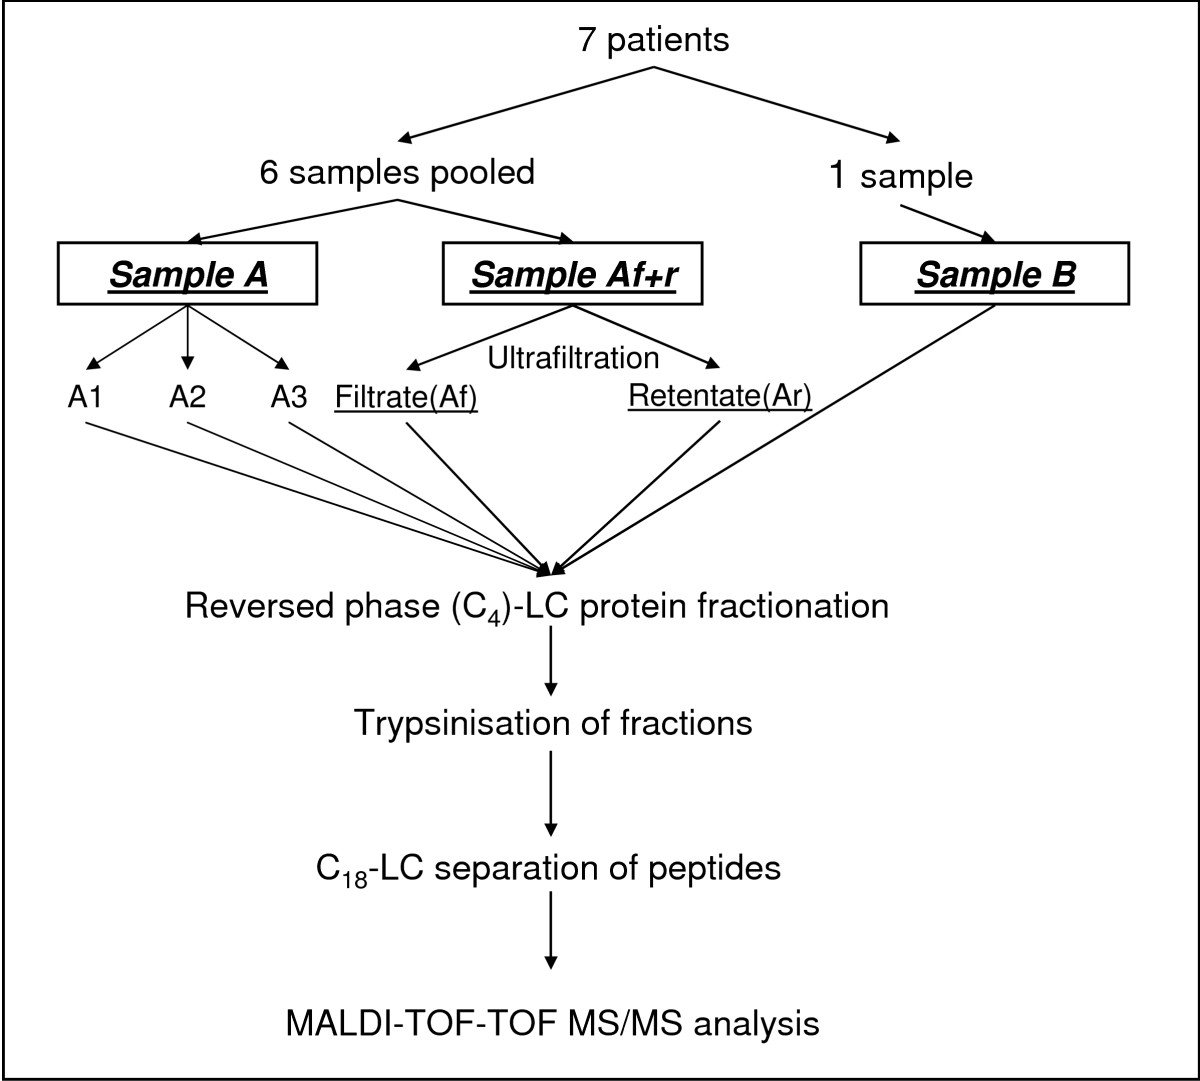 http://static-content.springer.com/image/art%3A10.1186%2F1477-5956-7-17/MediaObjects/12953_2008_Article_121_Fig1_HTML.jpg